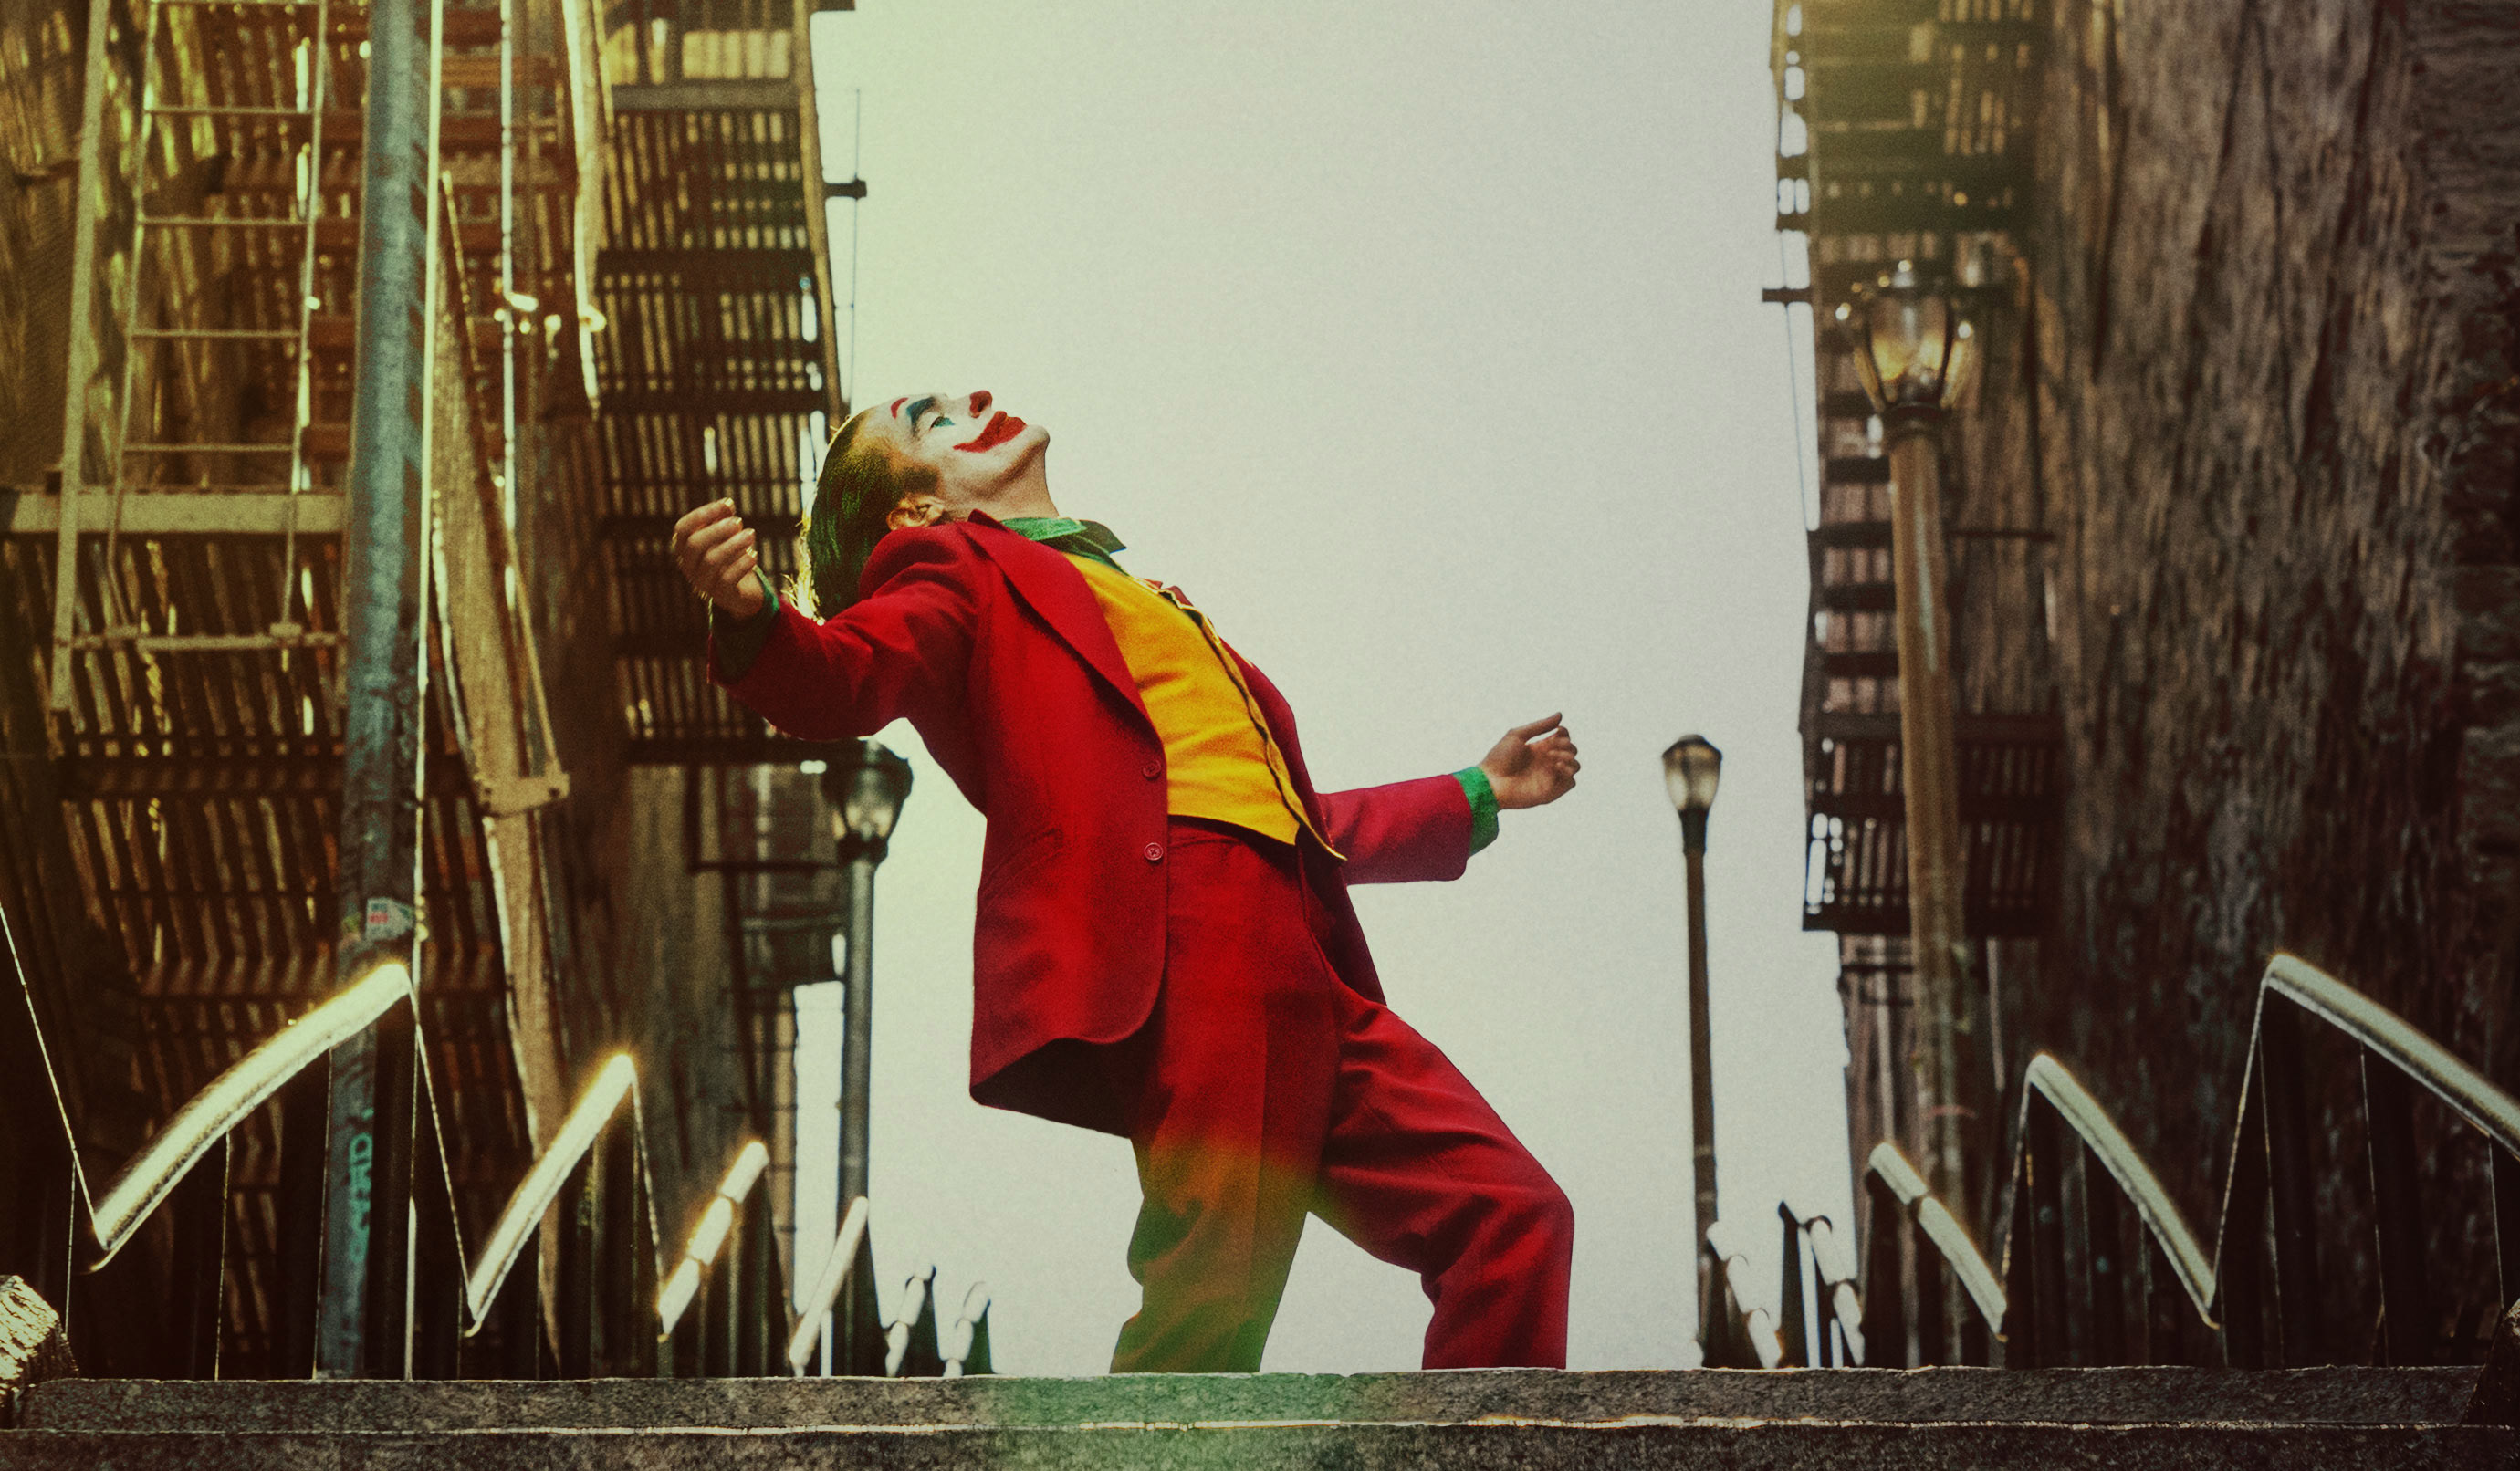 Joaquin Phoenix dancing on the now famous Joker stairs